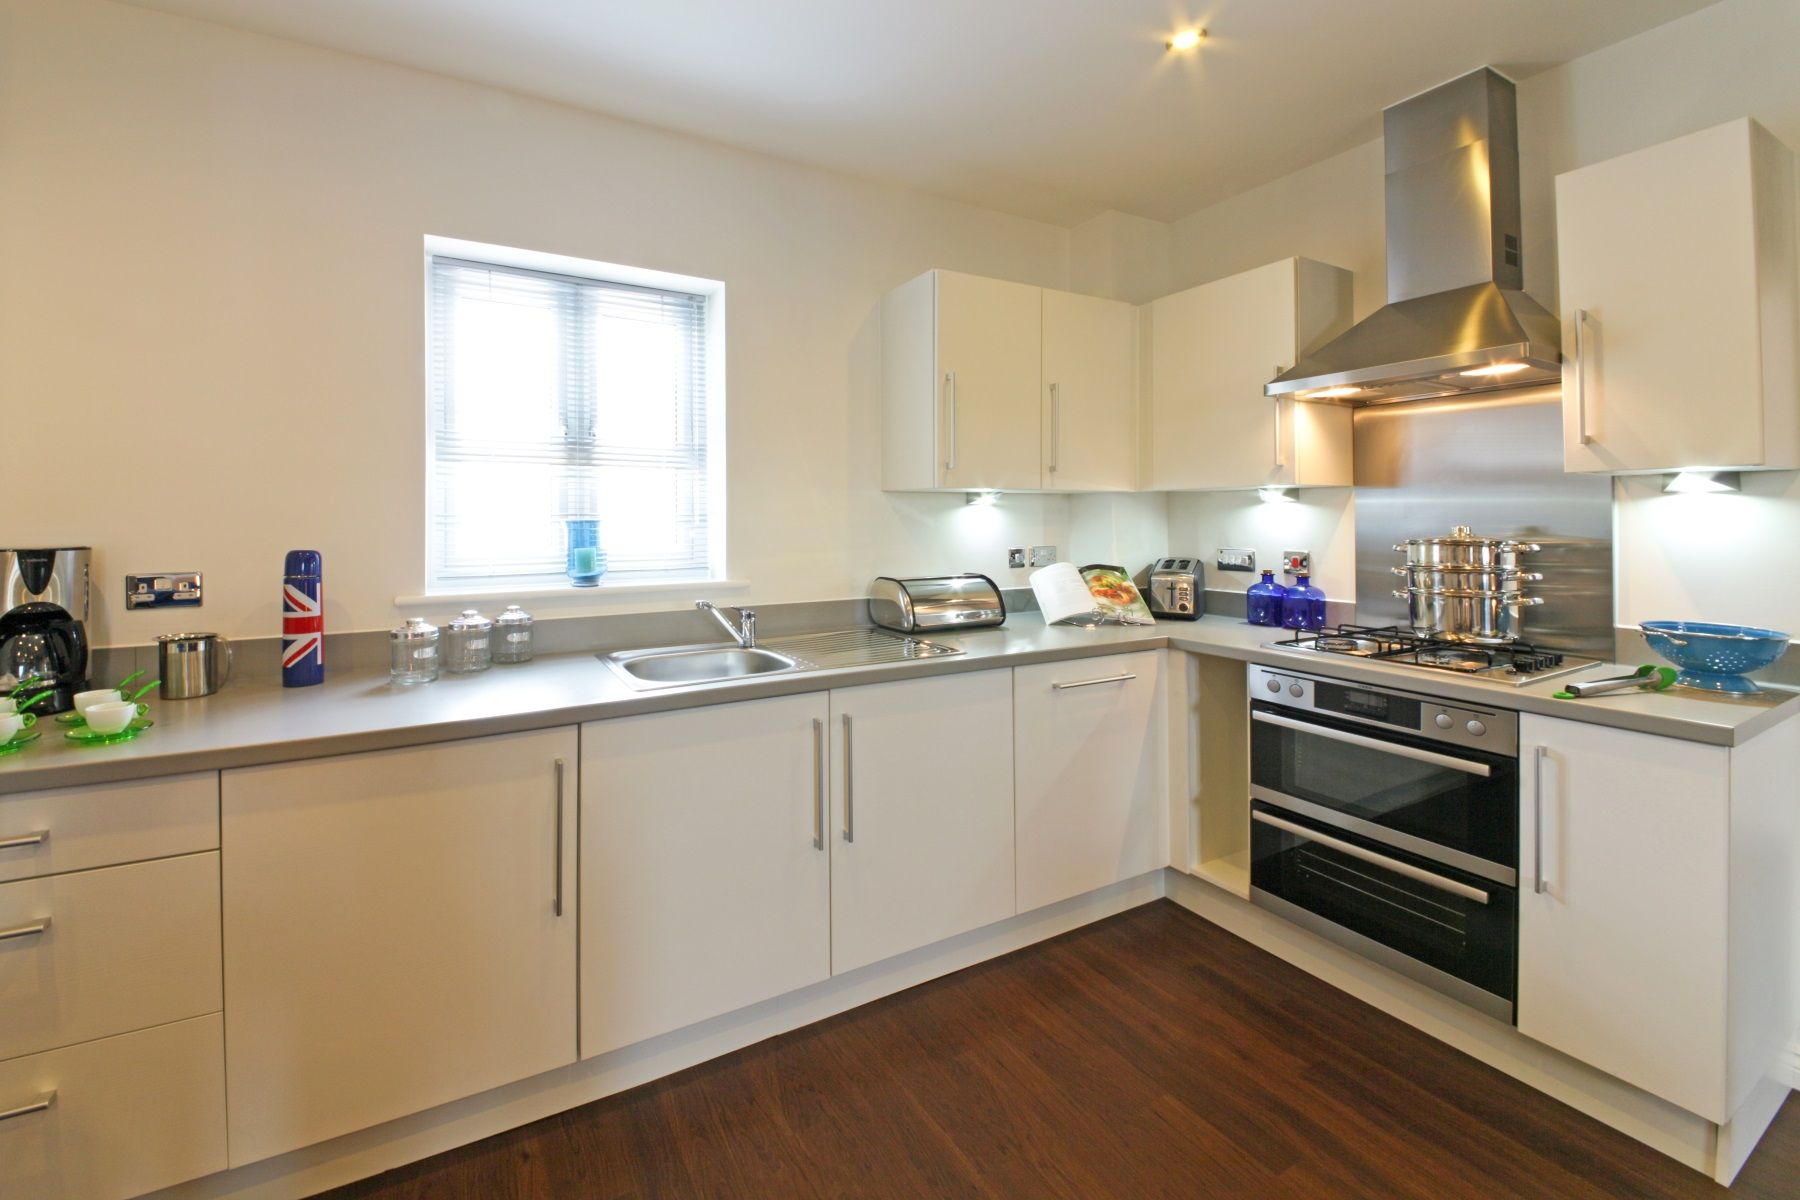 TW Exeter - Riverside Walk - Newdale example kitchen